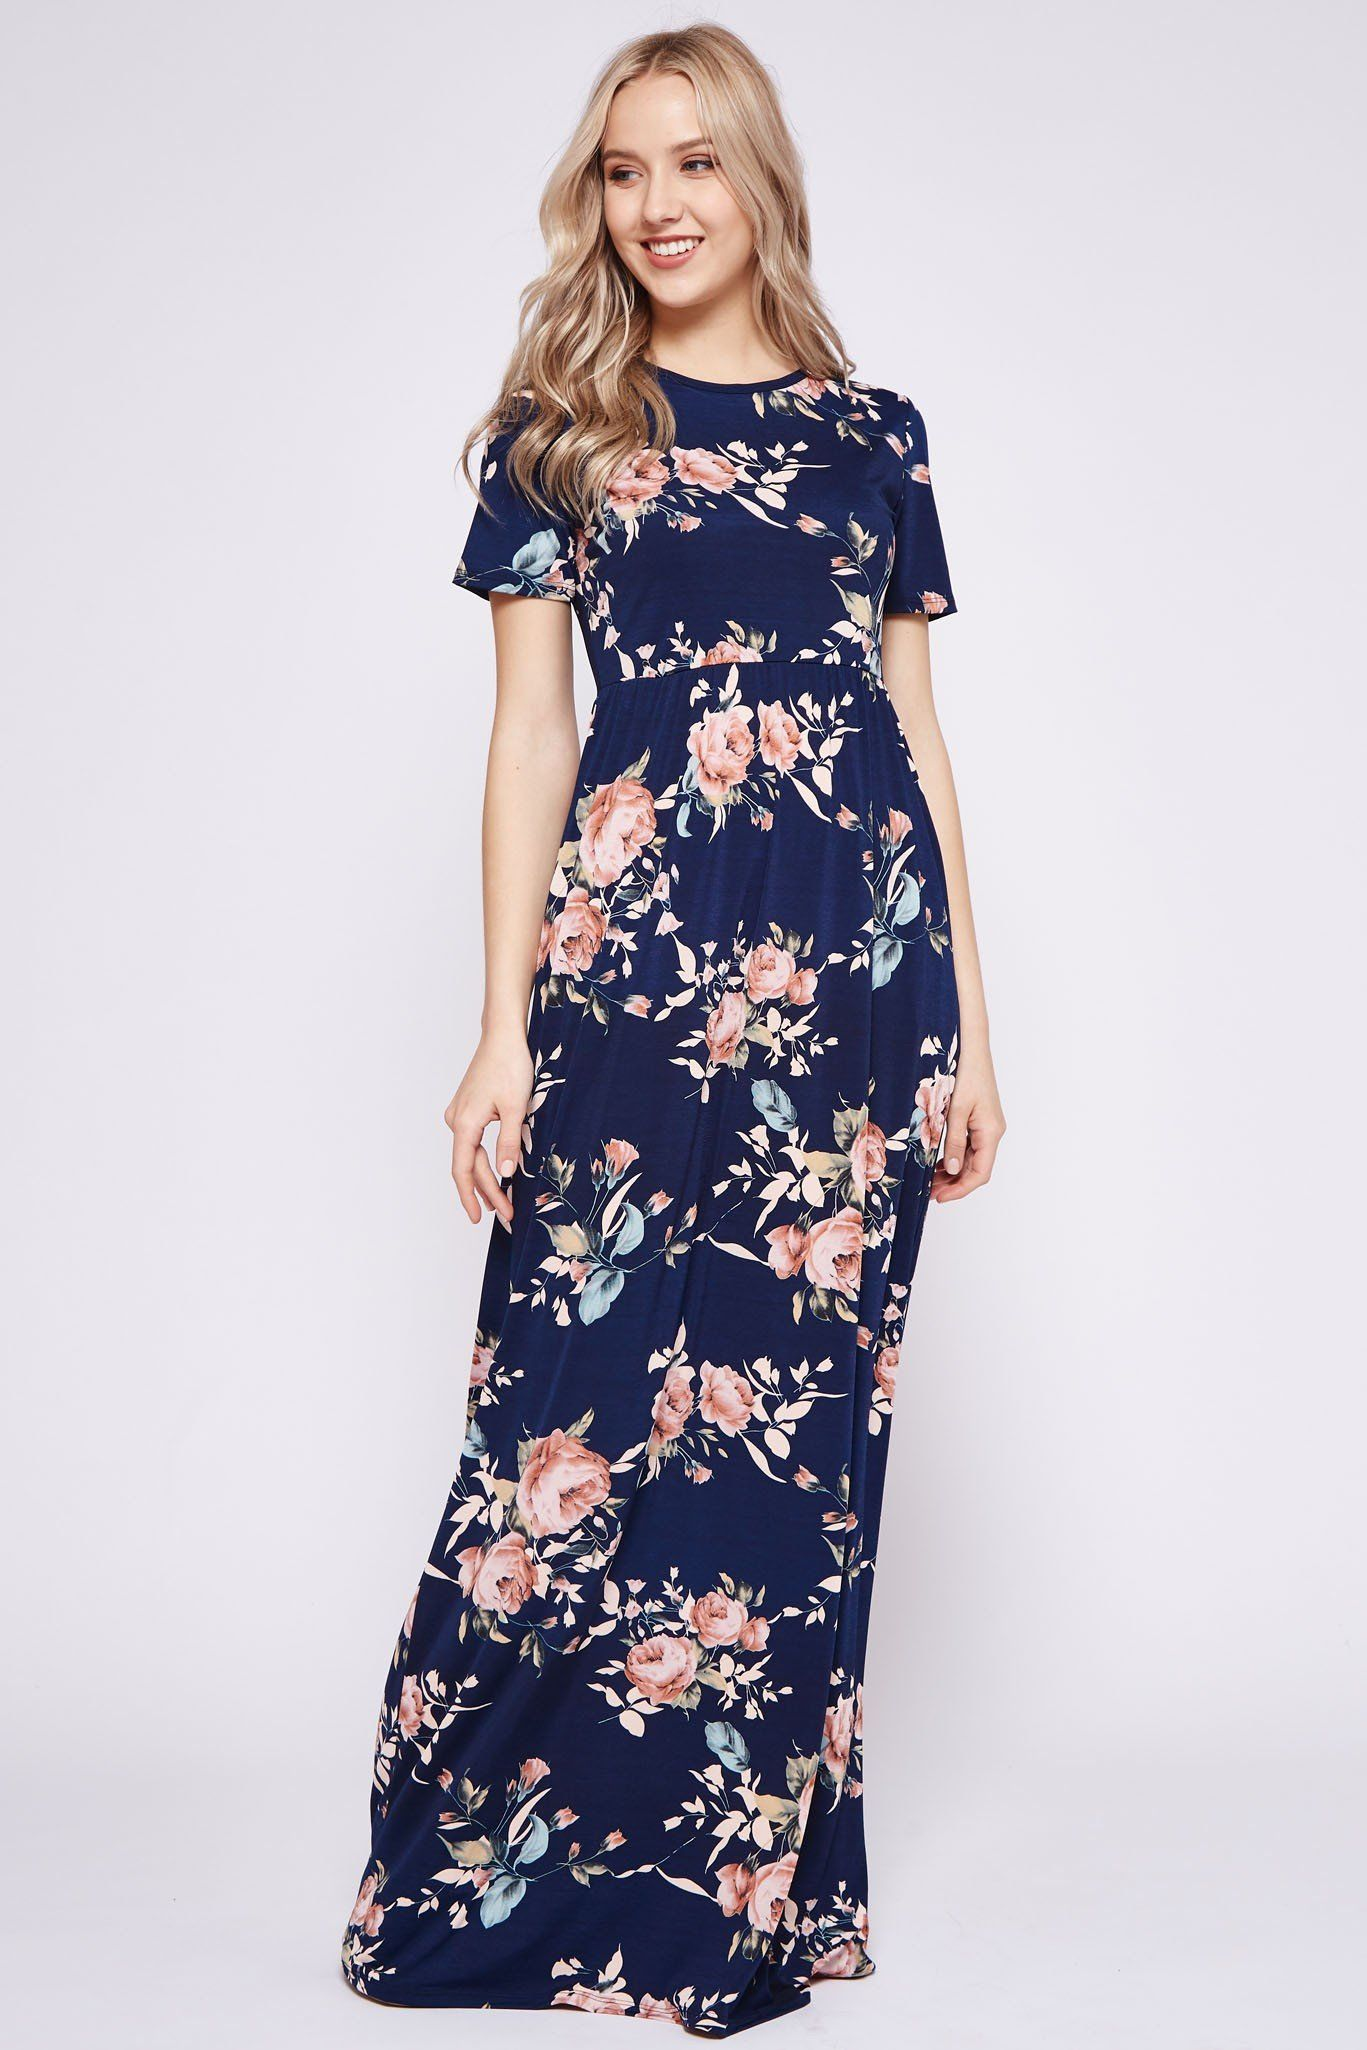 e0775139b91 2018 Spring Navy Blue Floral Printed Poly Spandex High Low Tank Maxi Dress  Pre Order